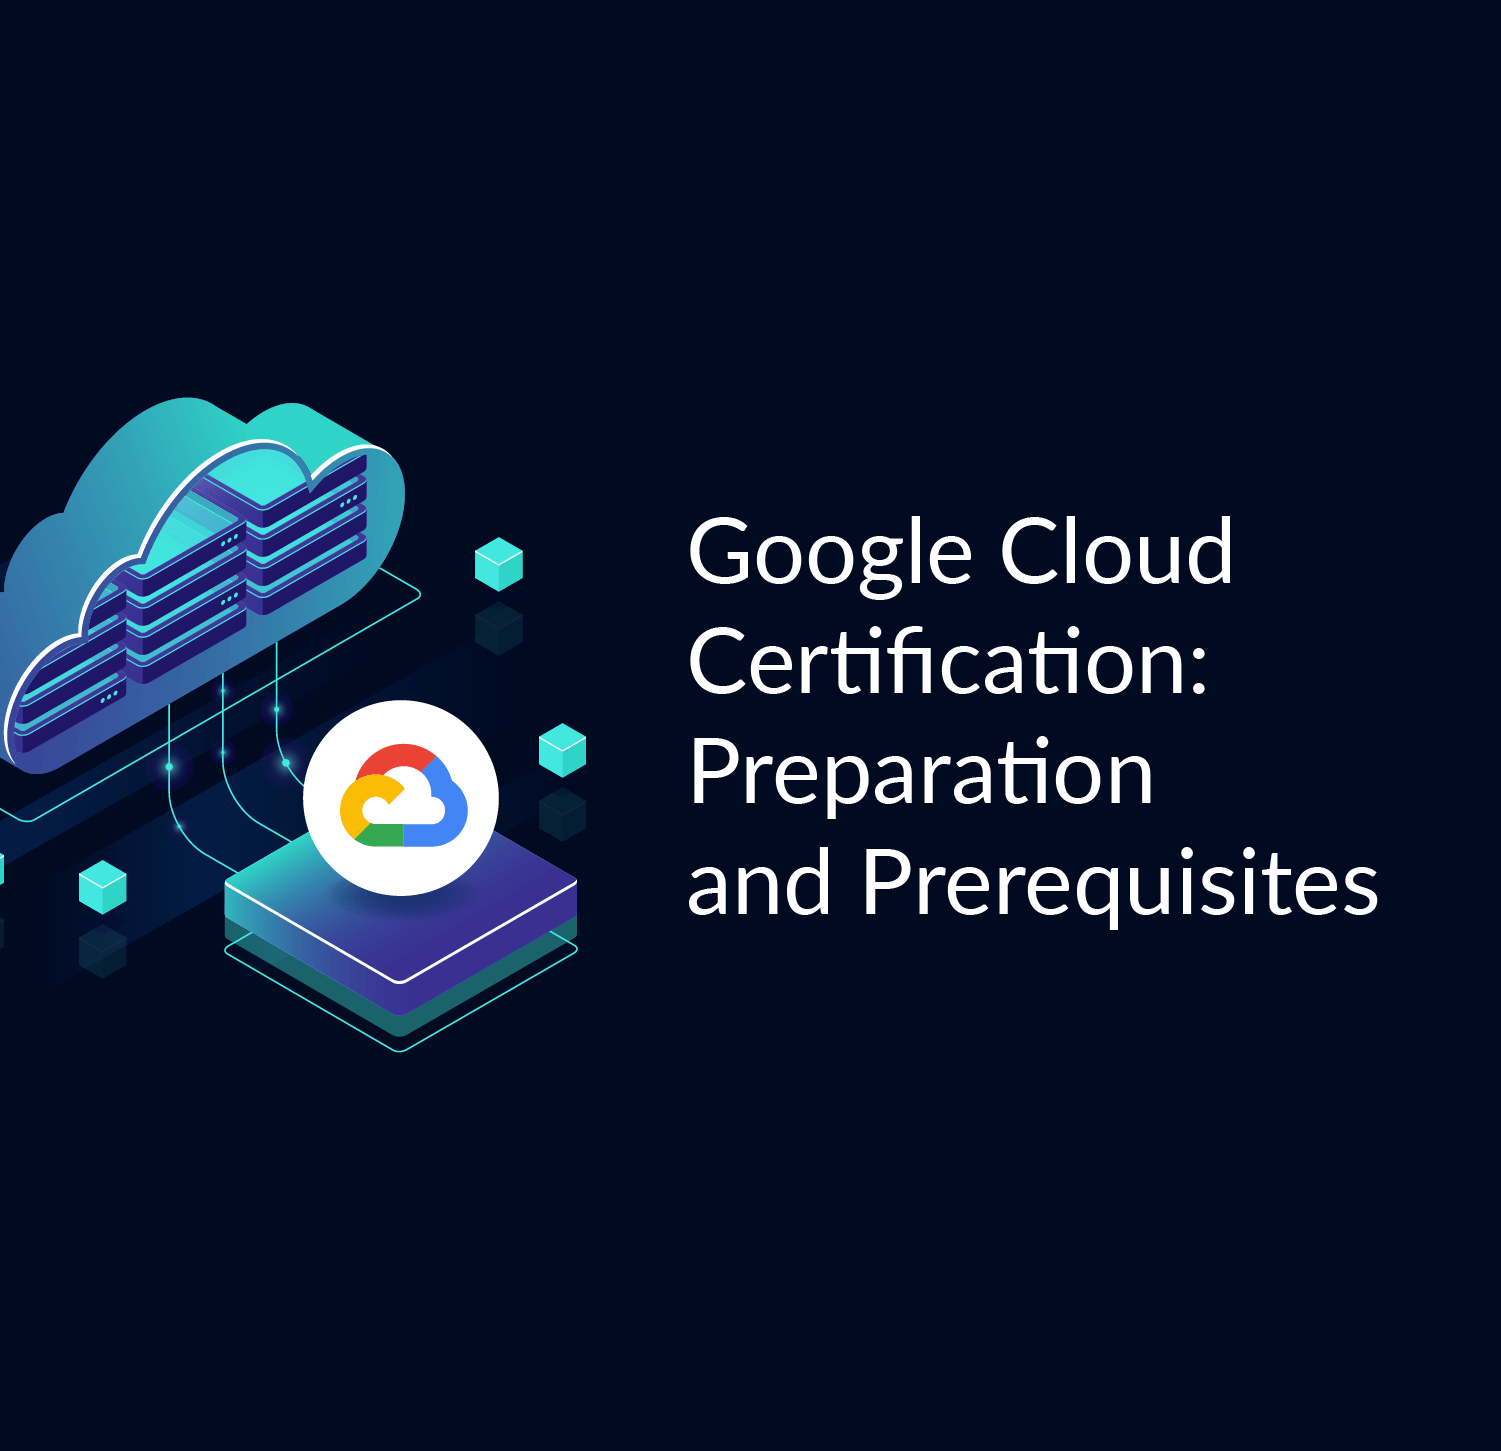 Google Cloud Certification Preparation And Prerequisites